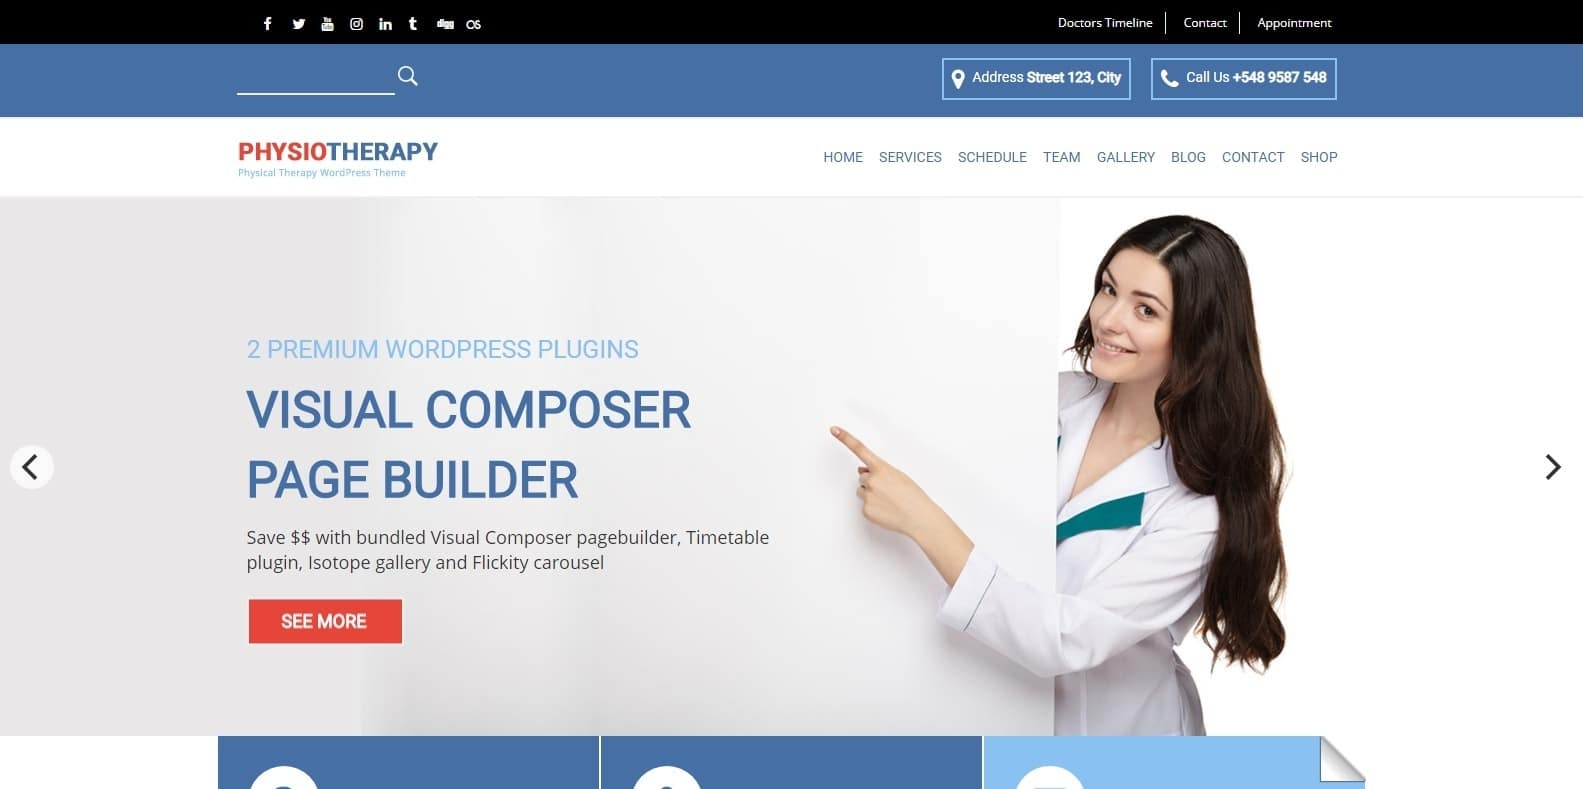 physiotherapy-wordpress-physical-therapy-website-template